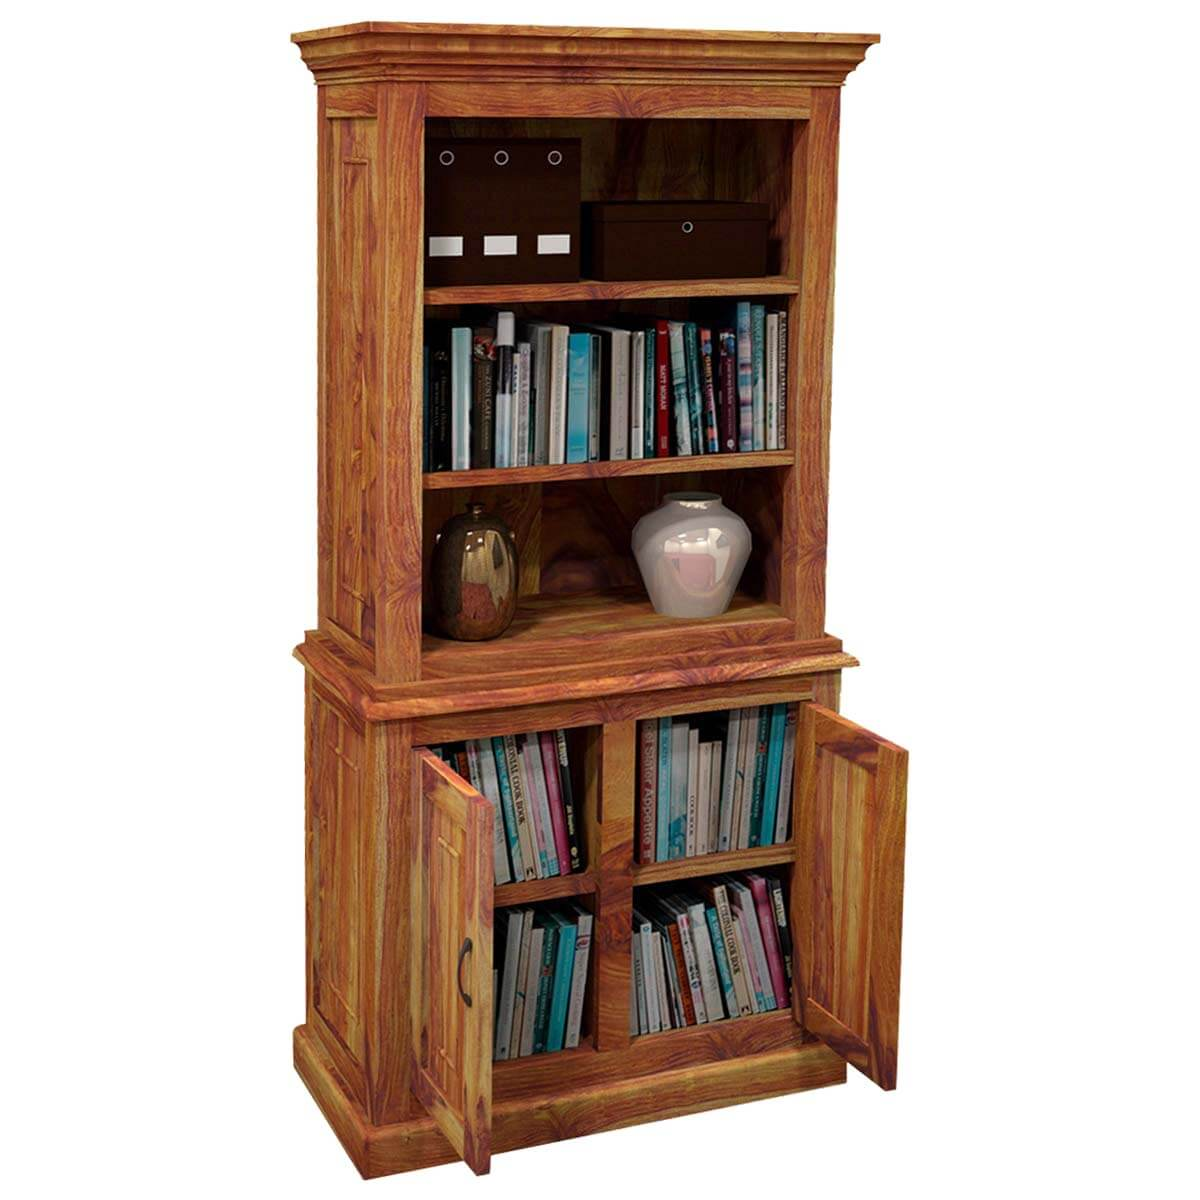 Idaho Modern Solid Wood 3 Open Shelf Bookcase Hutch